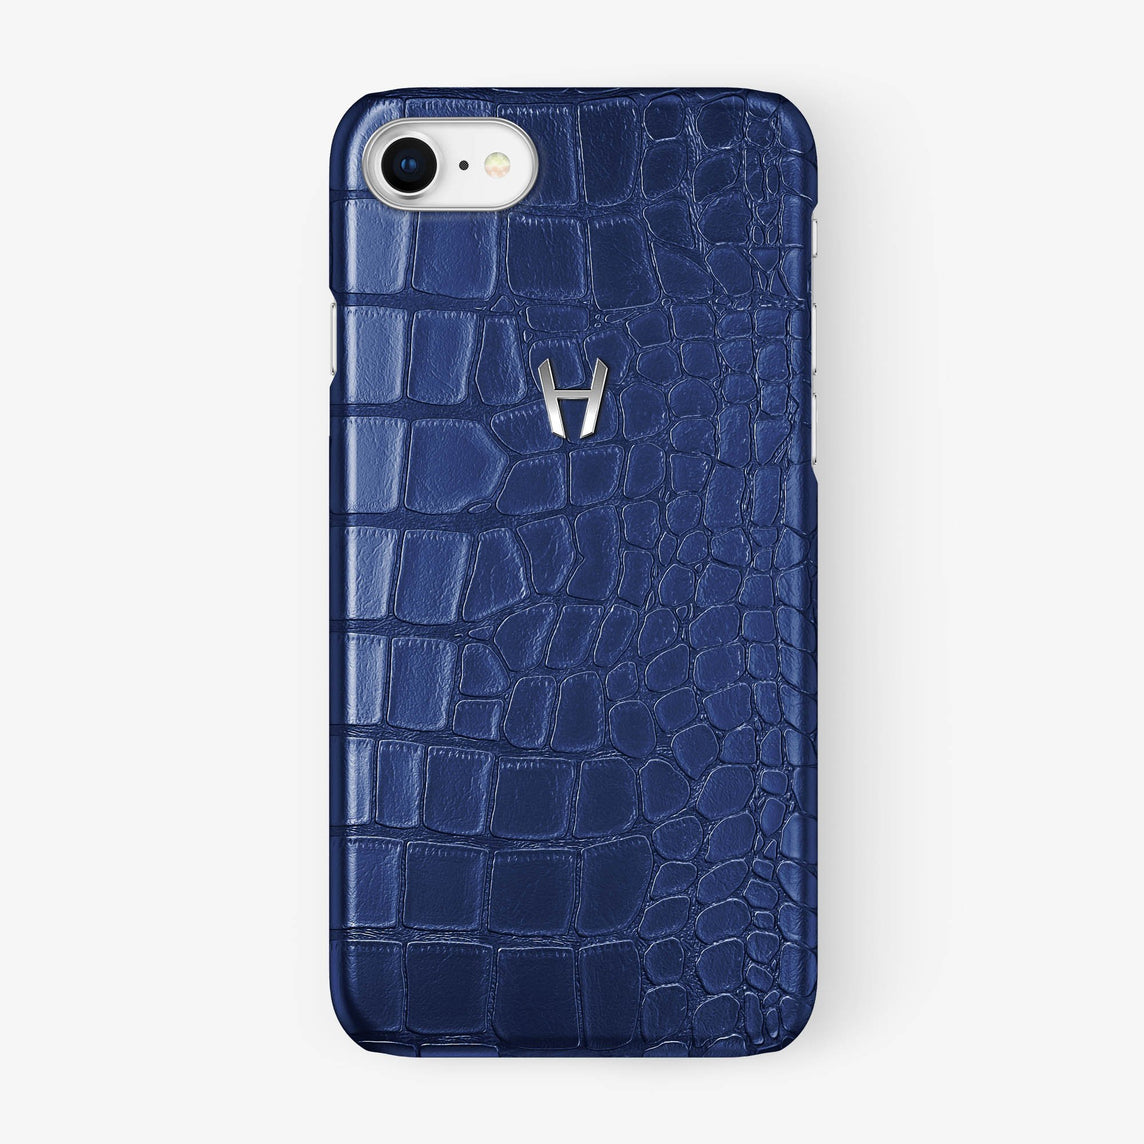 Alligator Case iPhone 7/8 | Navy Blue - Stainless Steel